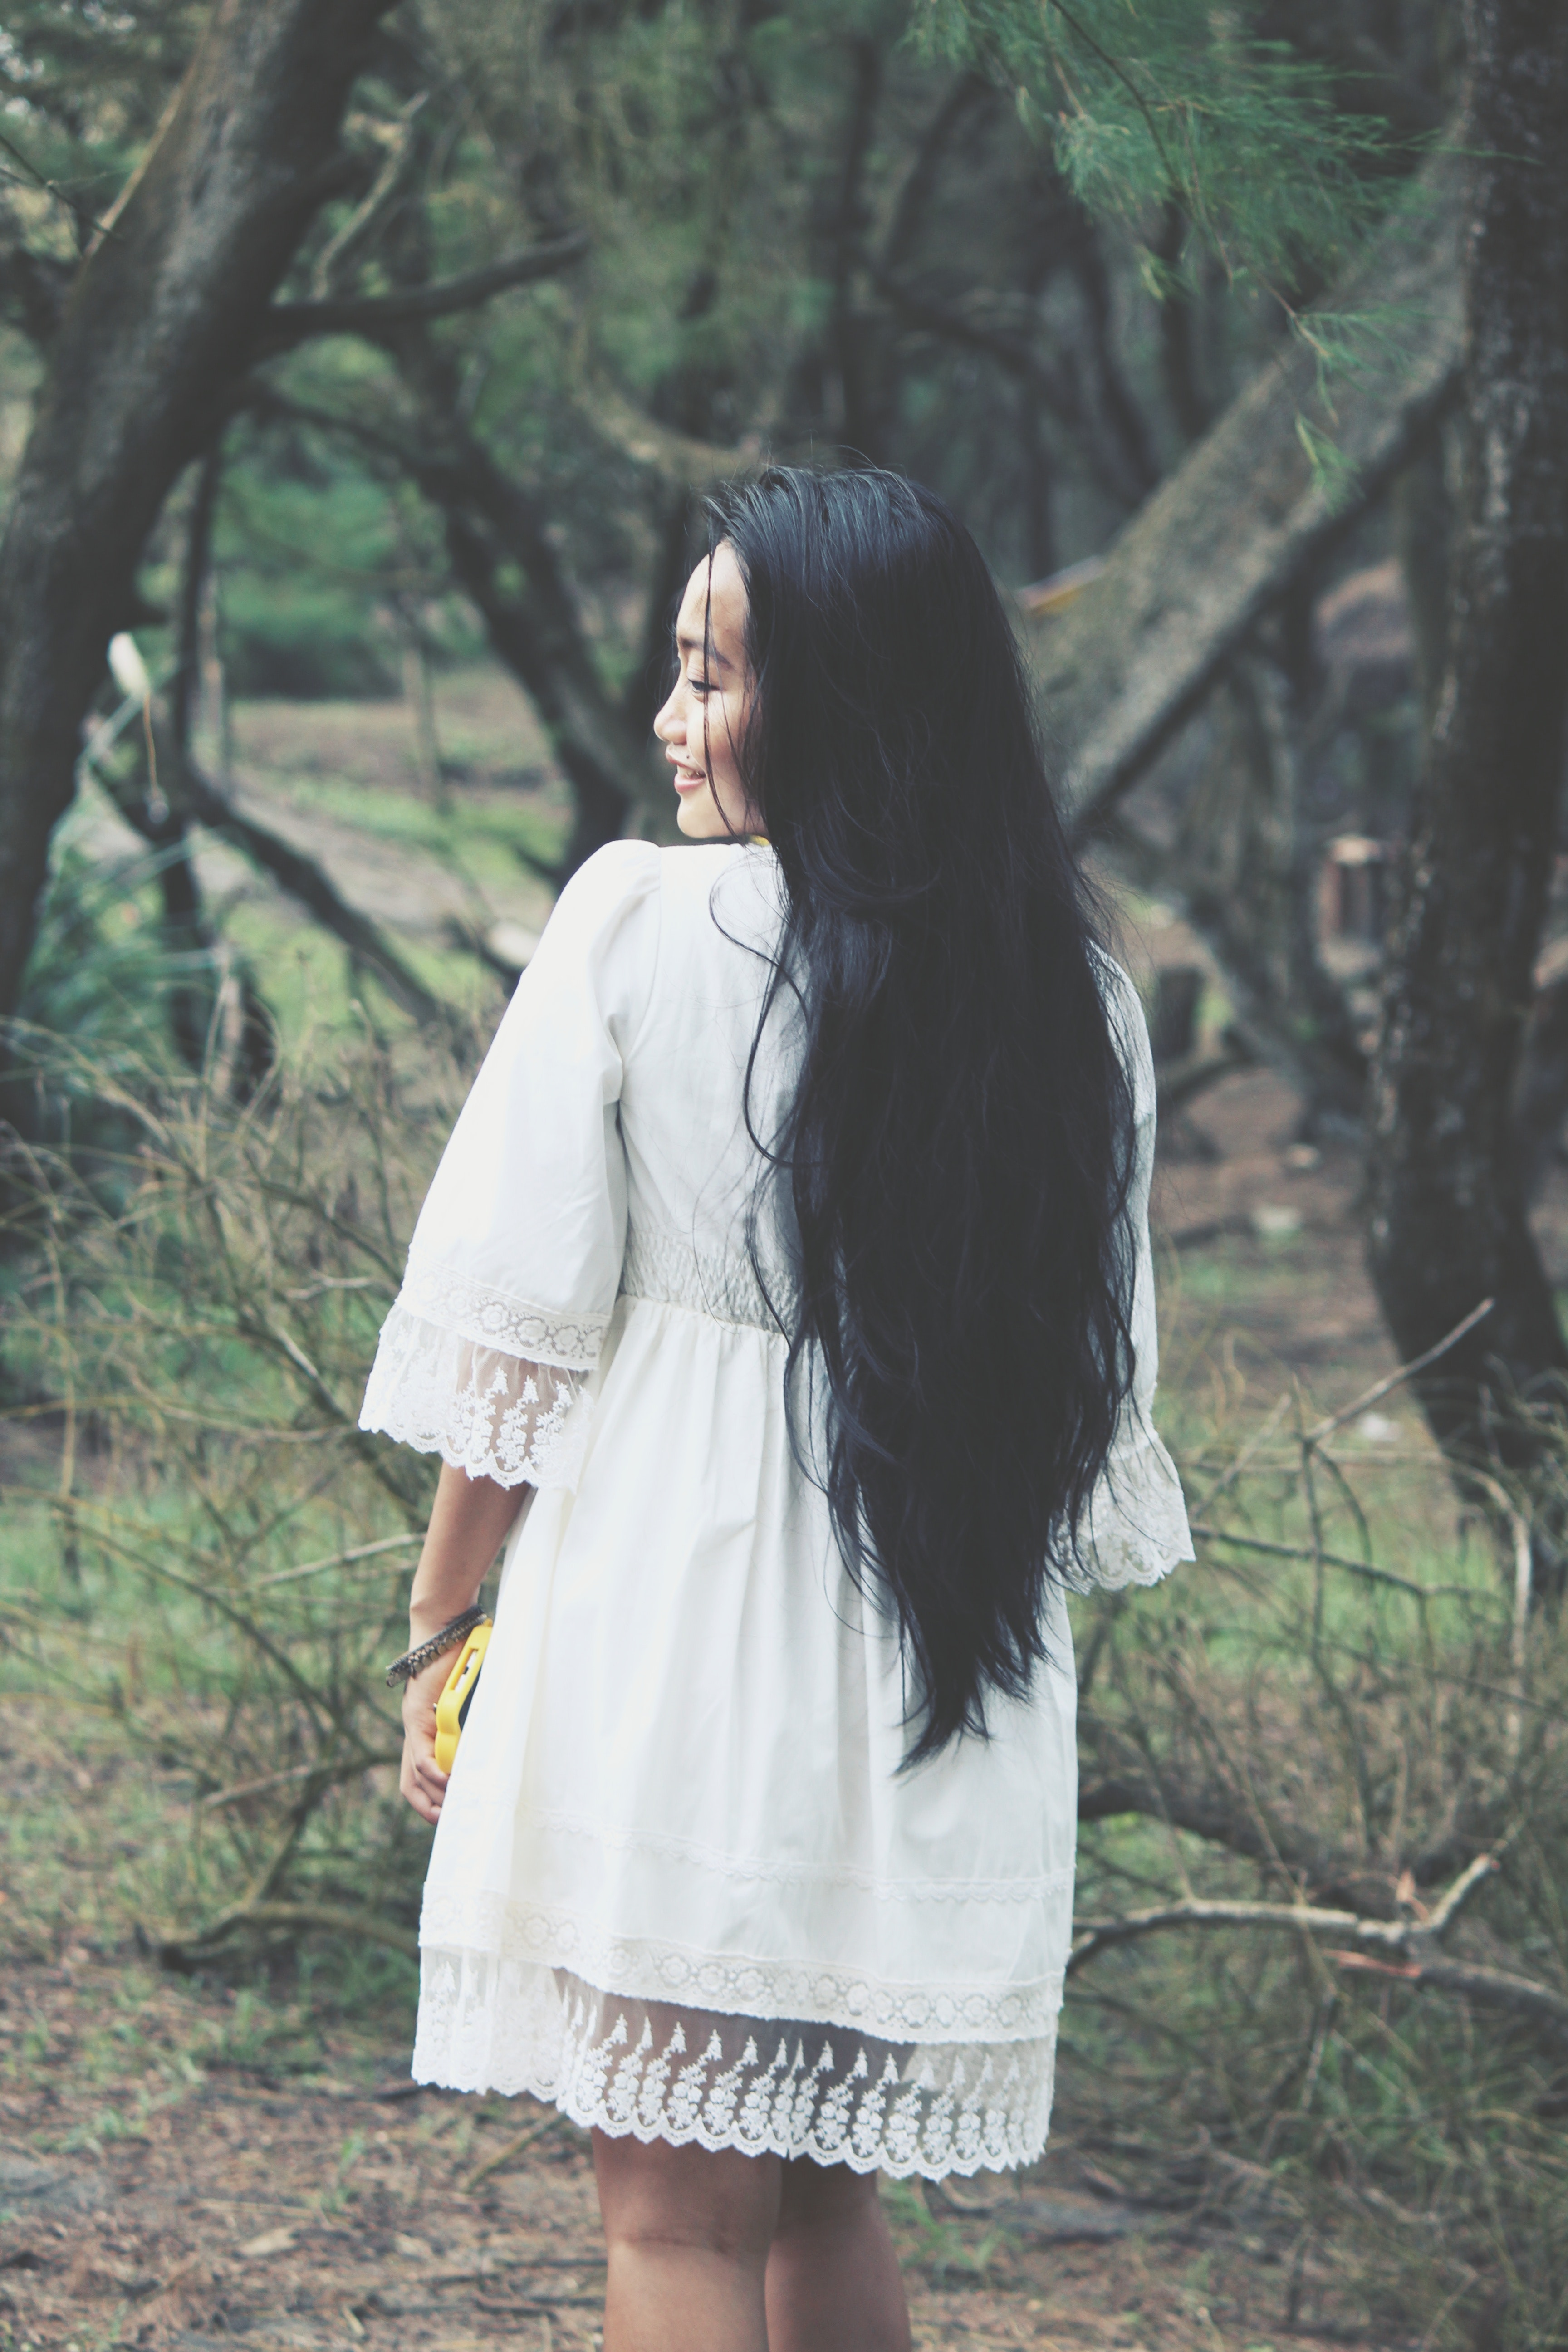 Shallow Focus Photography of Woman in White Mini Dress Near Tress, Asian, Outdoors, Woods, Wood, HQ Photo